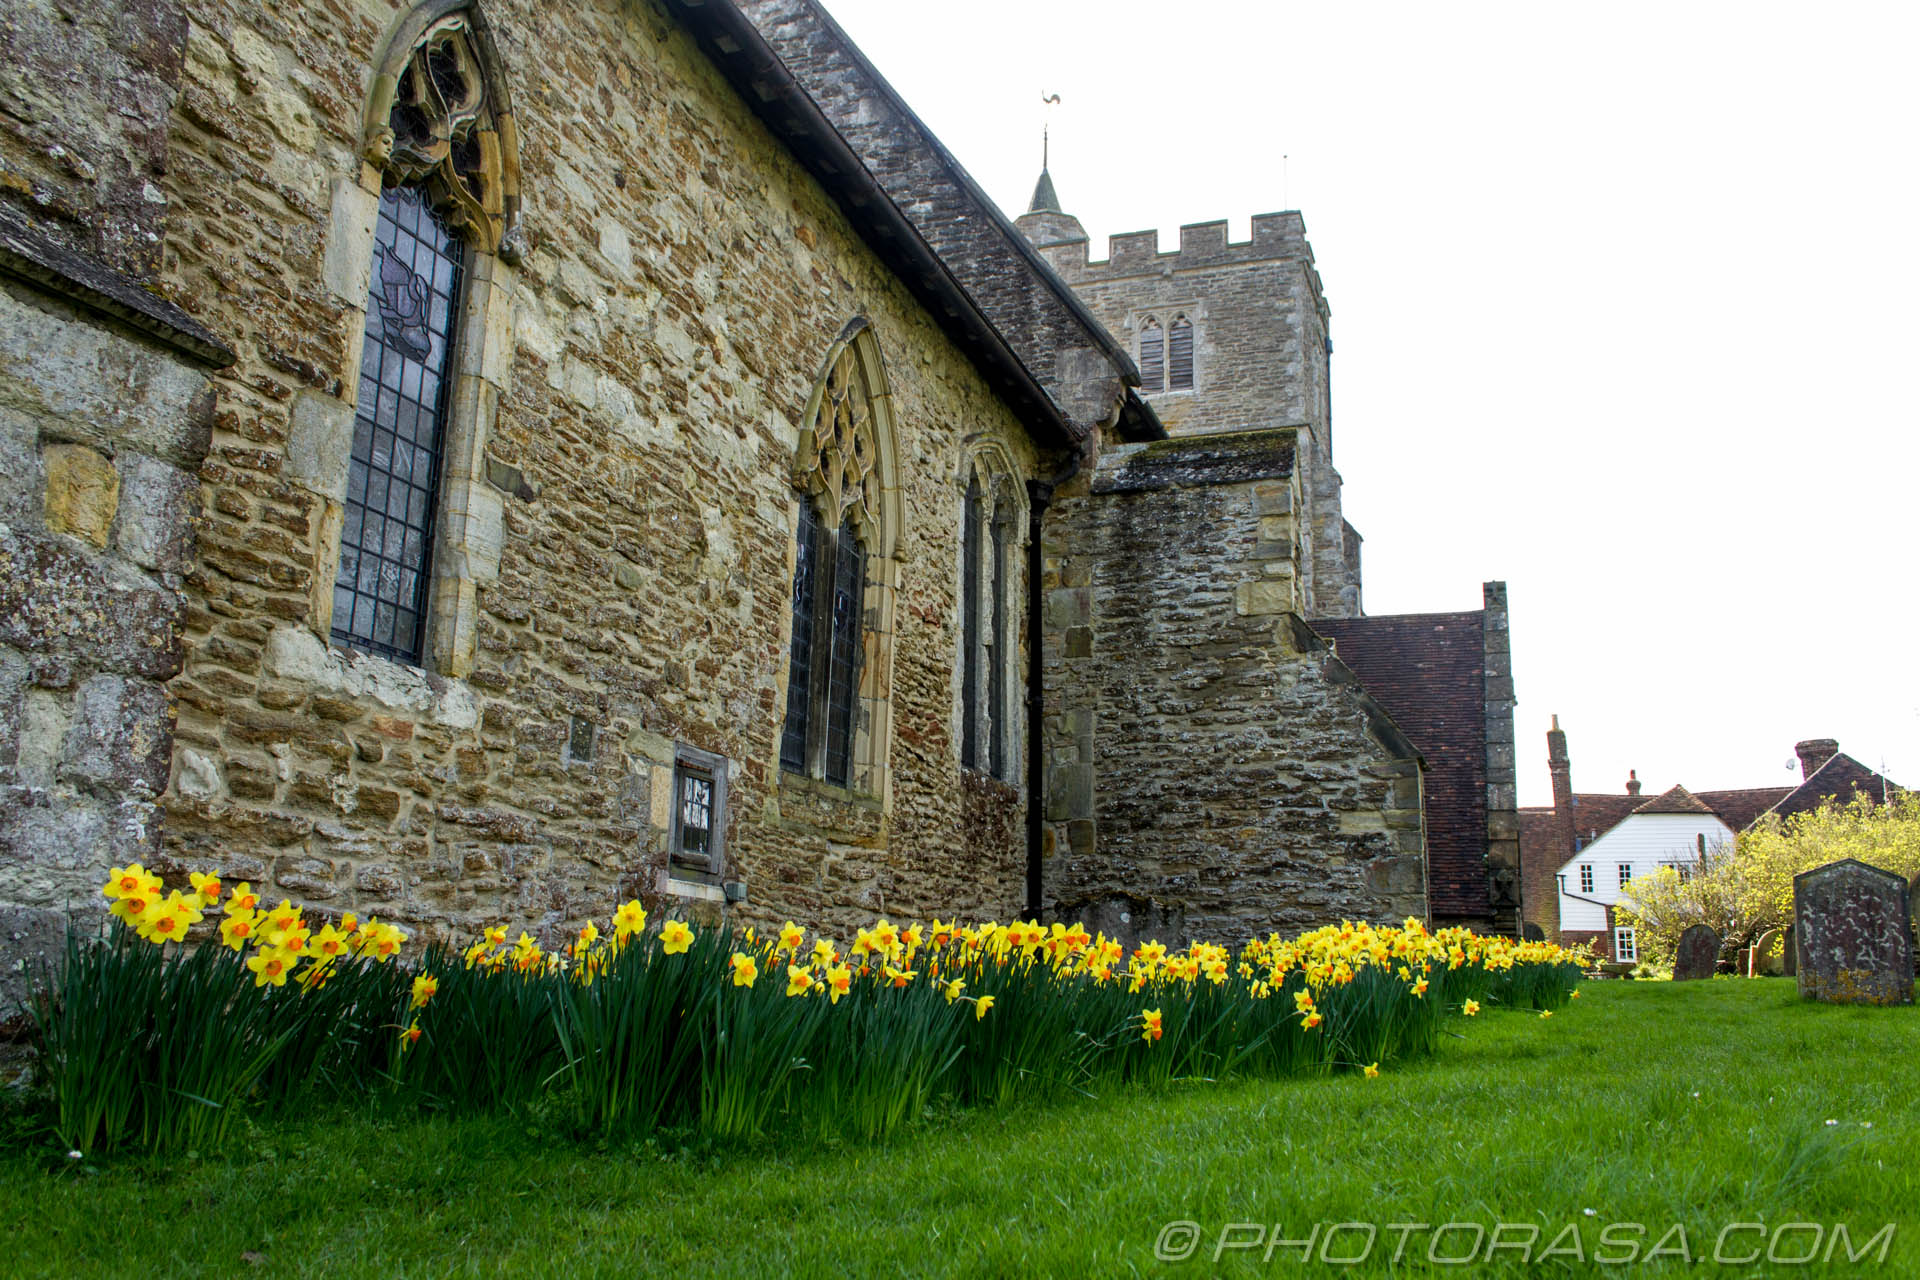 http://photorasa.com/saints-church-staplehurst-kent/daffodils-by-the-church/